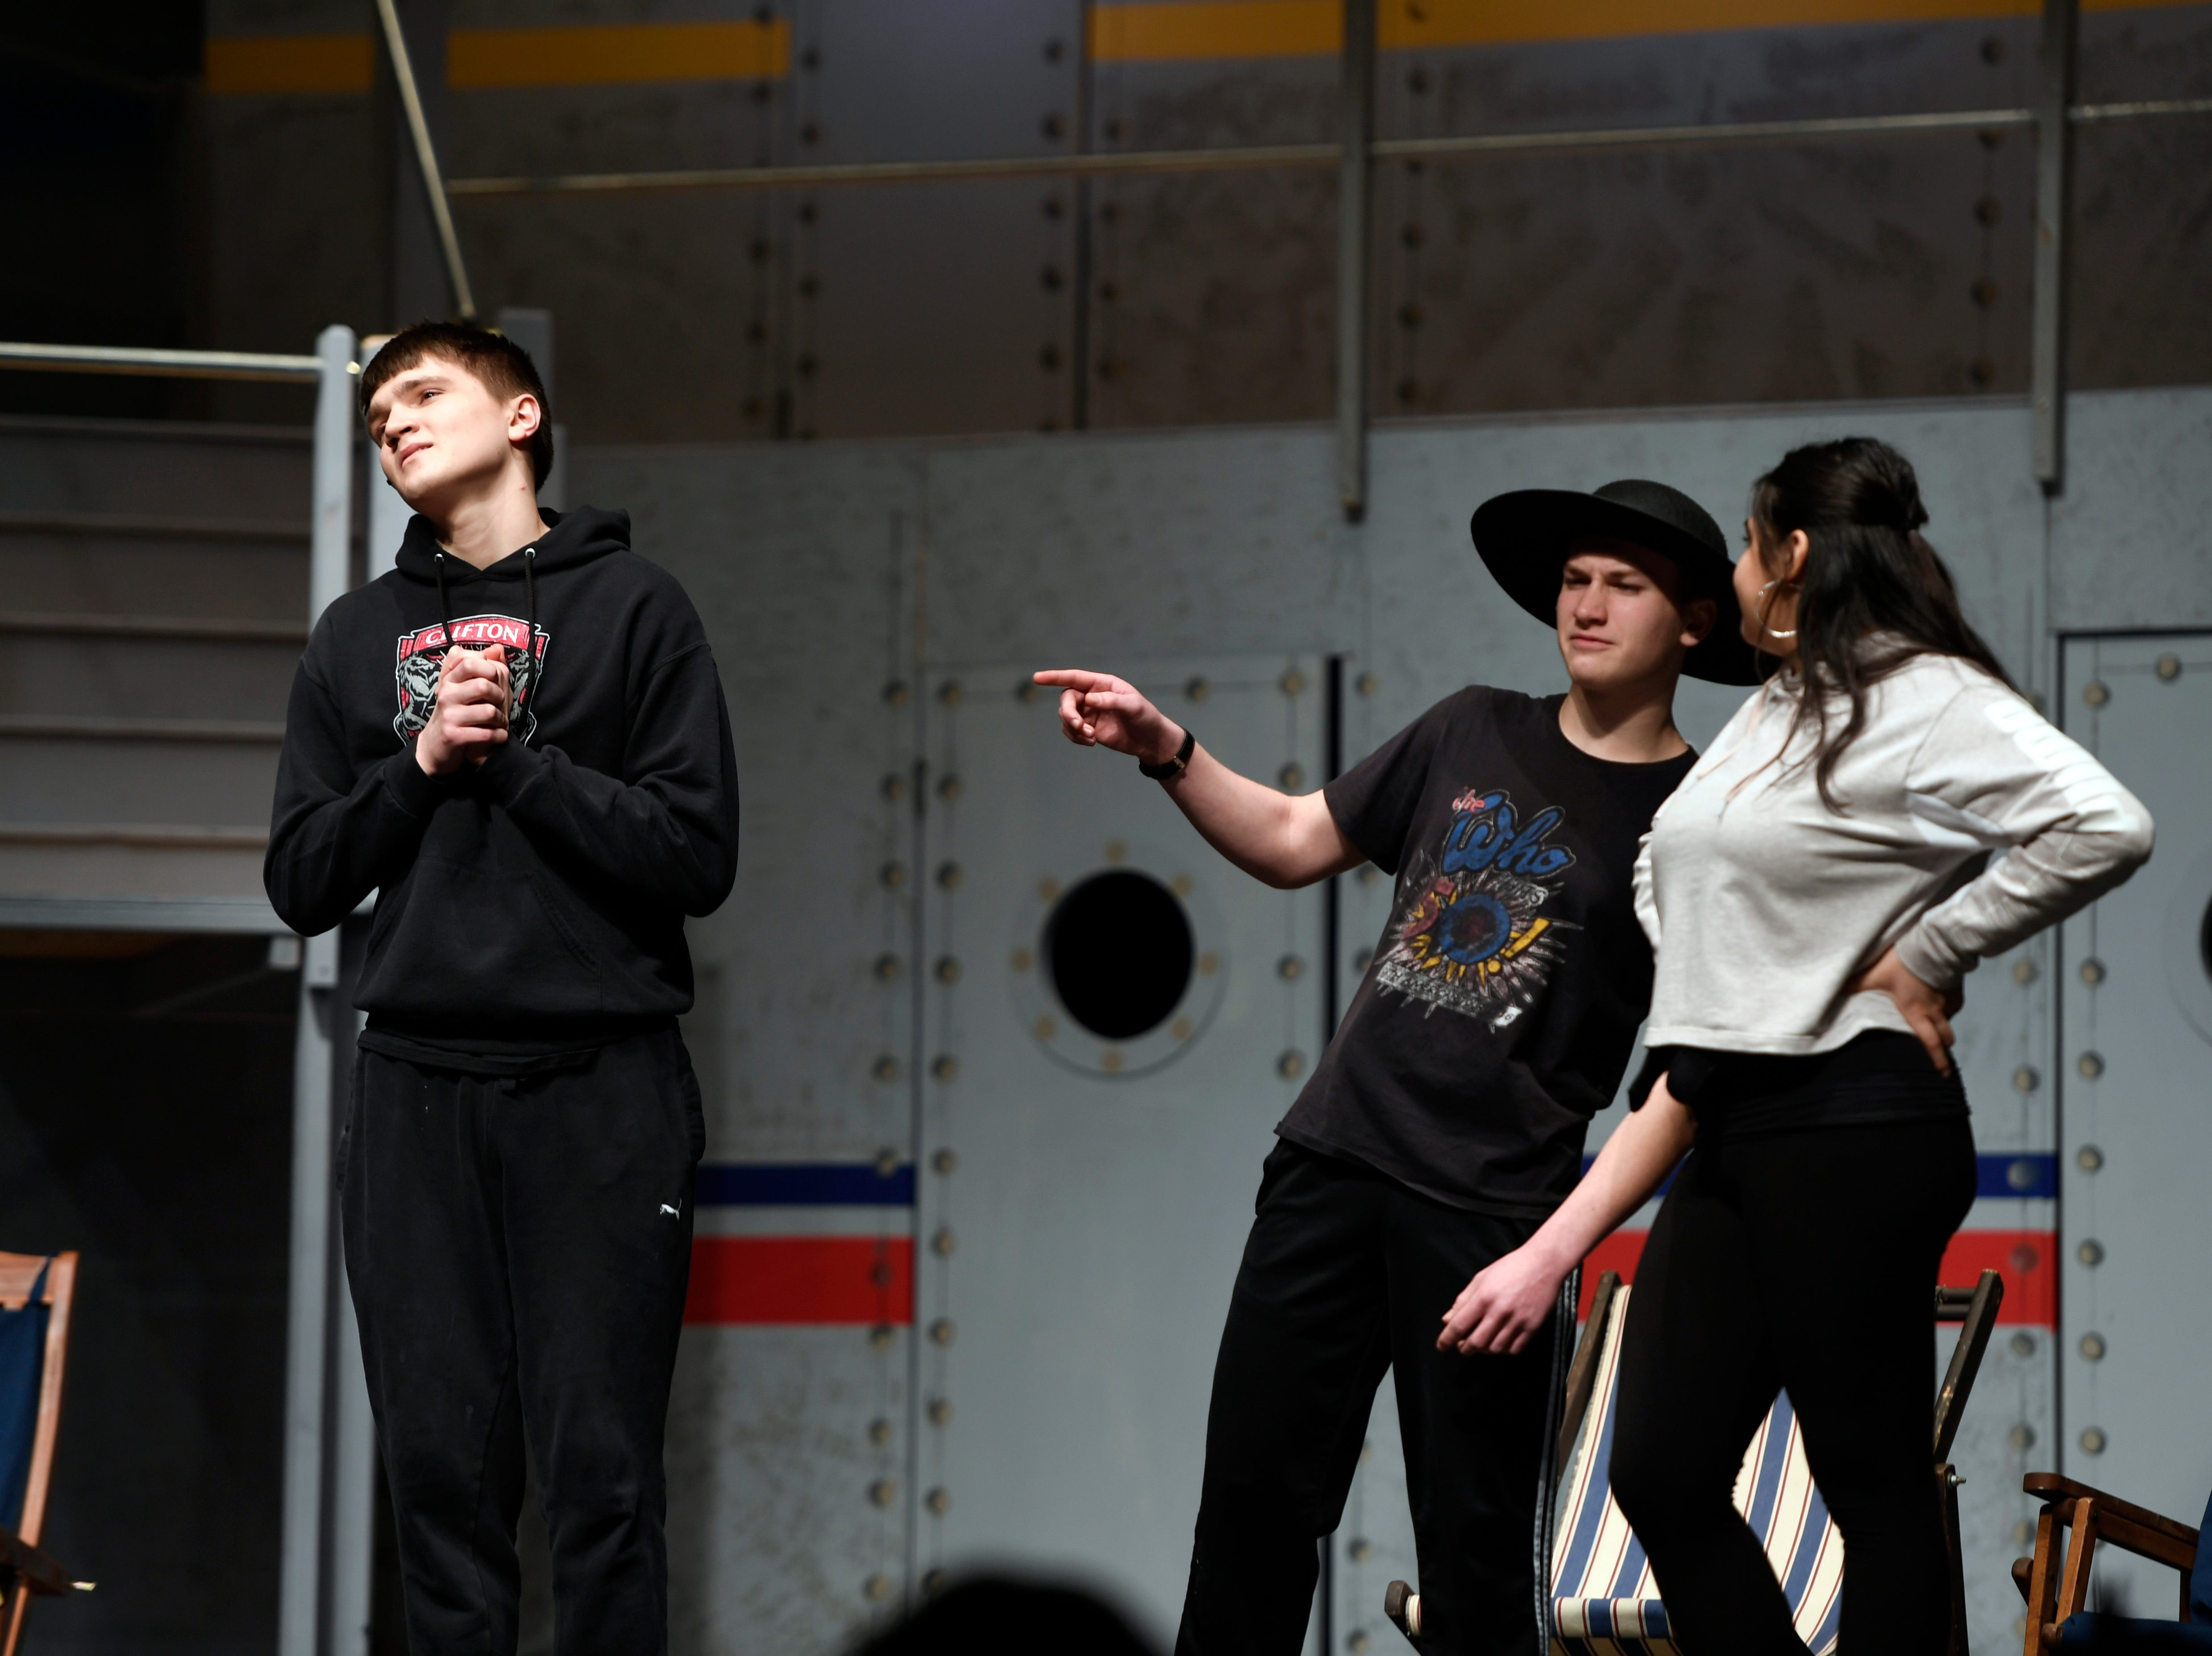 """(from left) Ian Kearney, Max Rubin, and Zariah Rivera perform during a dress rehearsal for the musical """"Anything Goes"""" on Monday, March 11, 2019, in Clifton. Clifton High School auditorium is hosting performances this Friday night, Saturday night, and Sunday afternoon."""